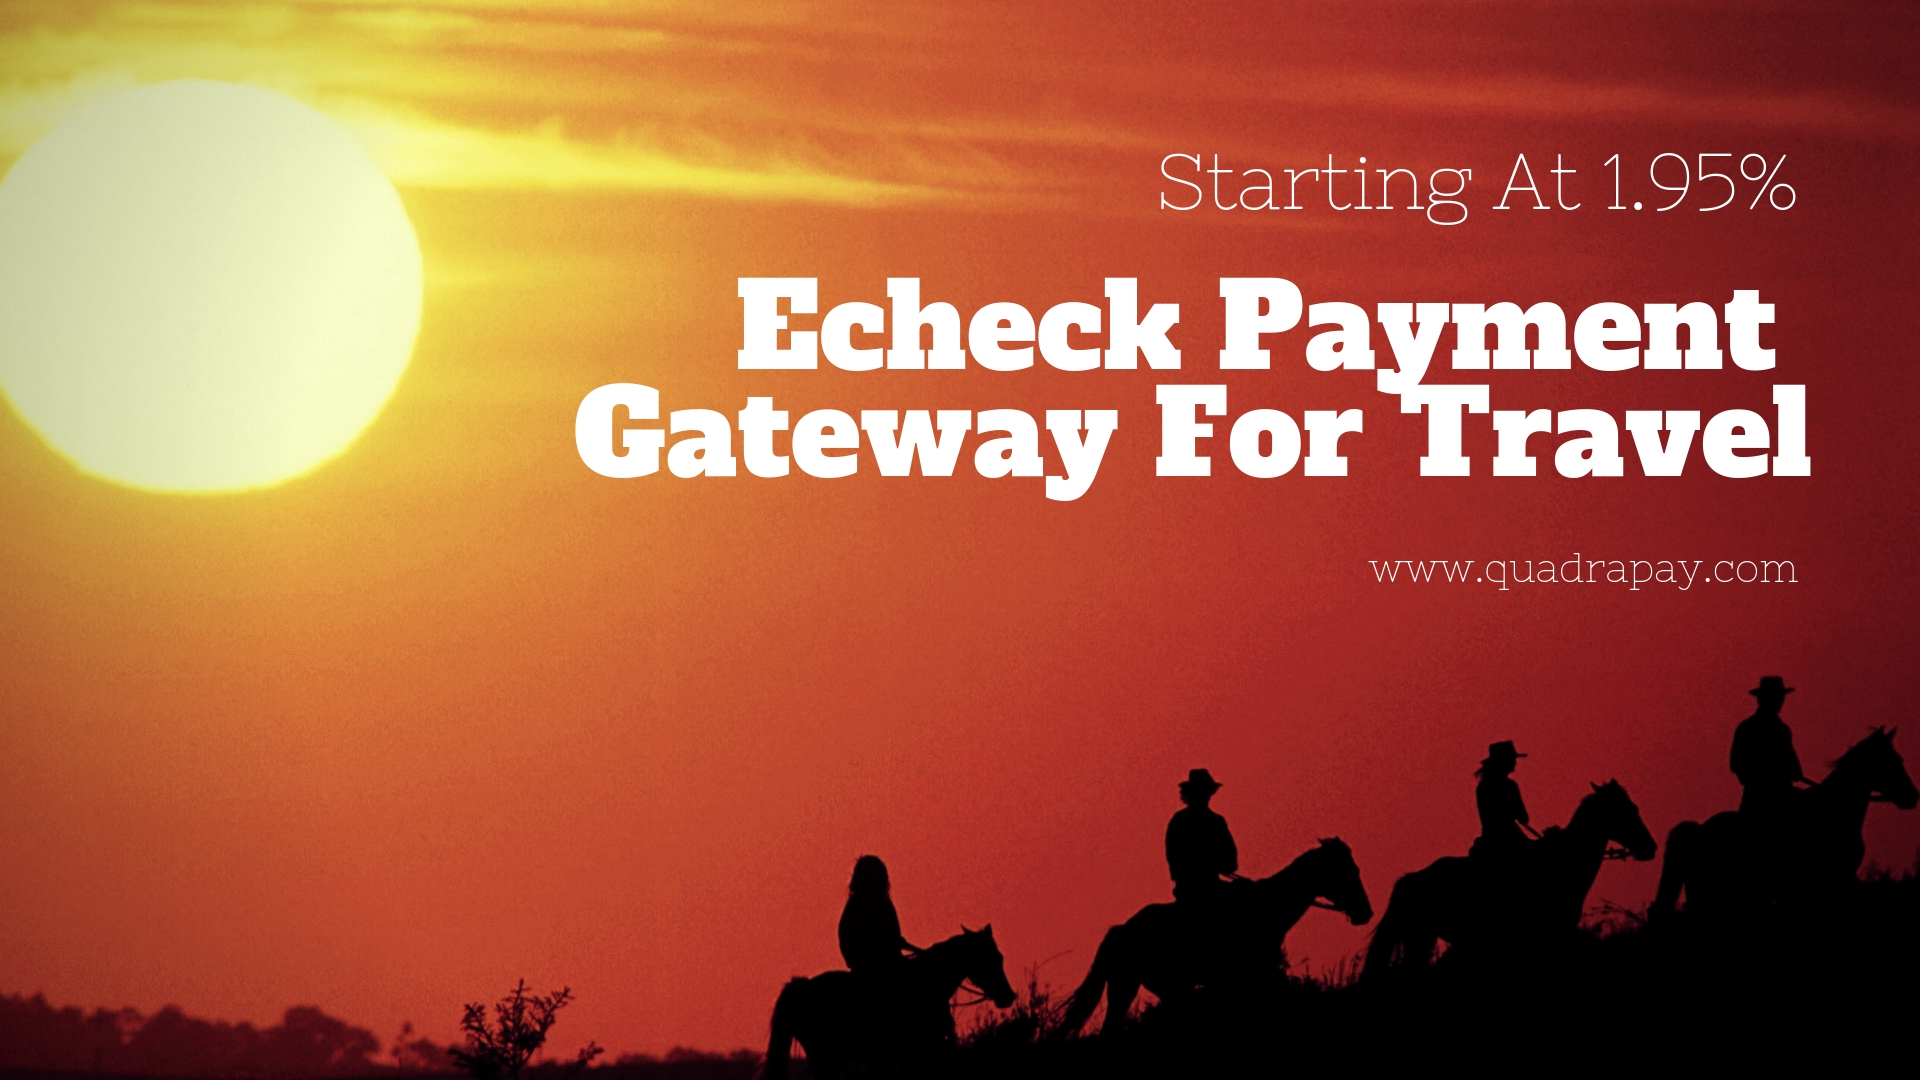 Echeck Payment Gateway For Travel